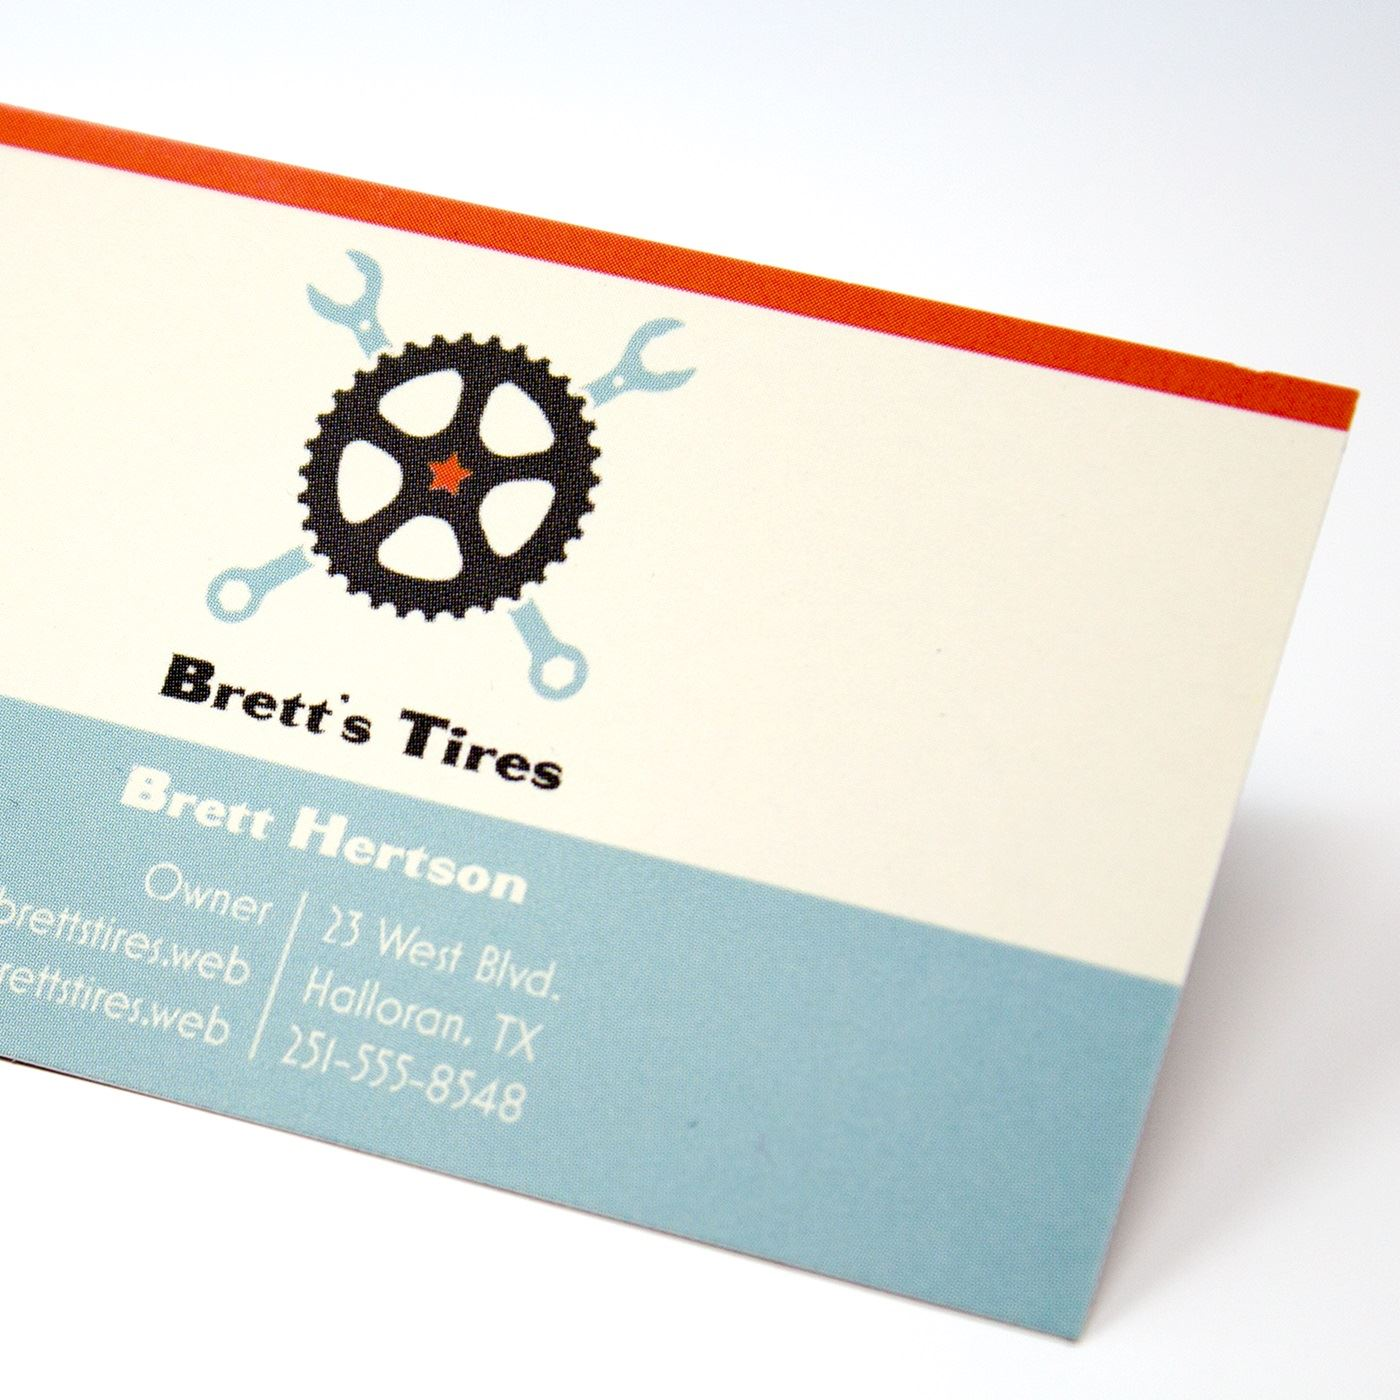 Soft Touch Business Cards, Soft Touch Coating